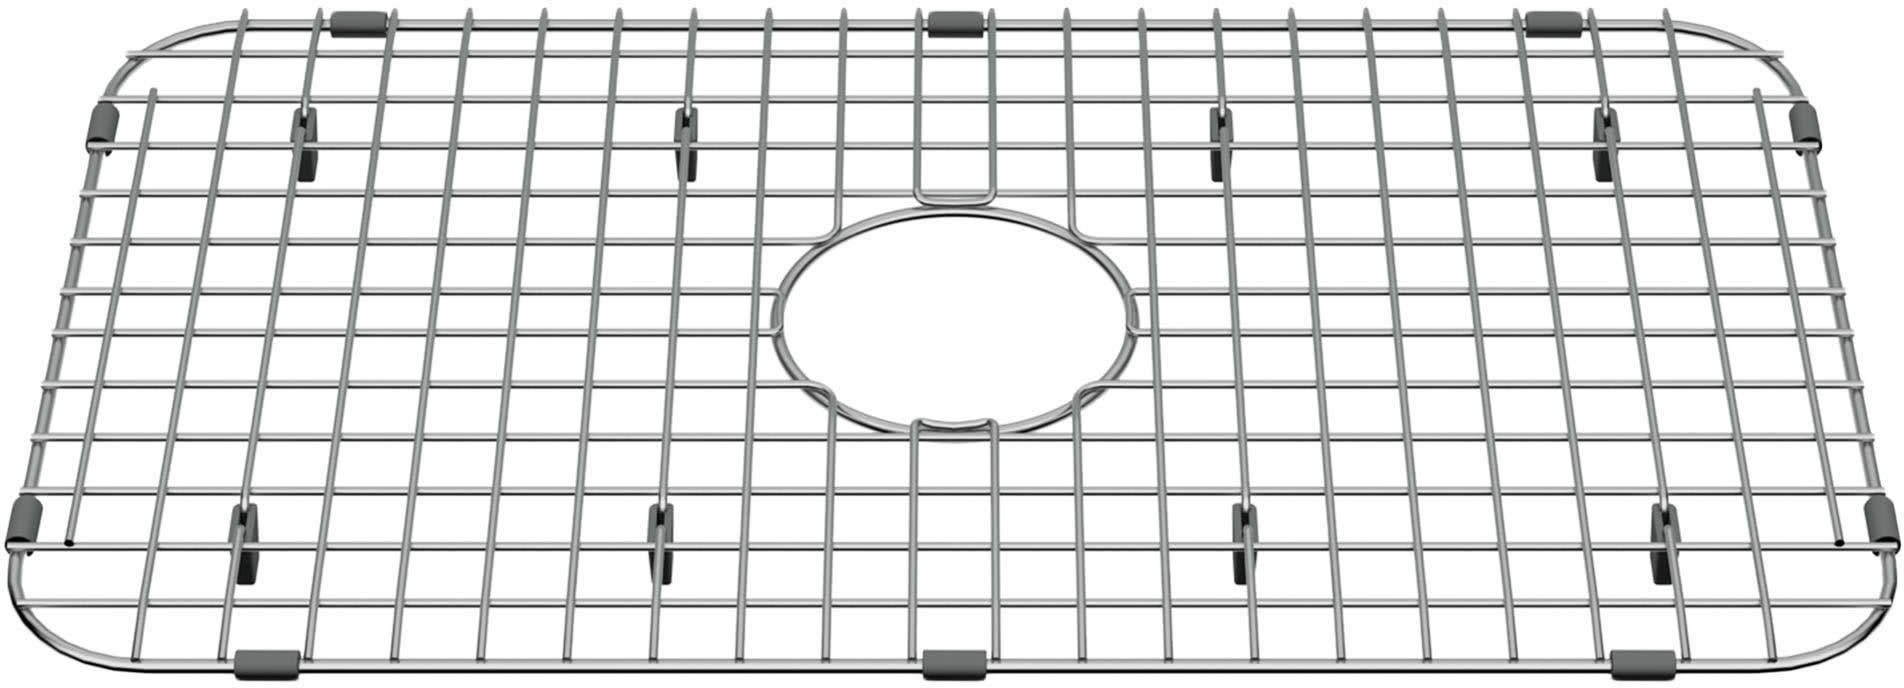 American Standard 8432000.075 Delancey 23-13/16'' L x 13-9/16'' W Stainless Steel Basin Rack with Rubber Feet